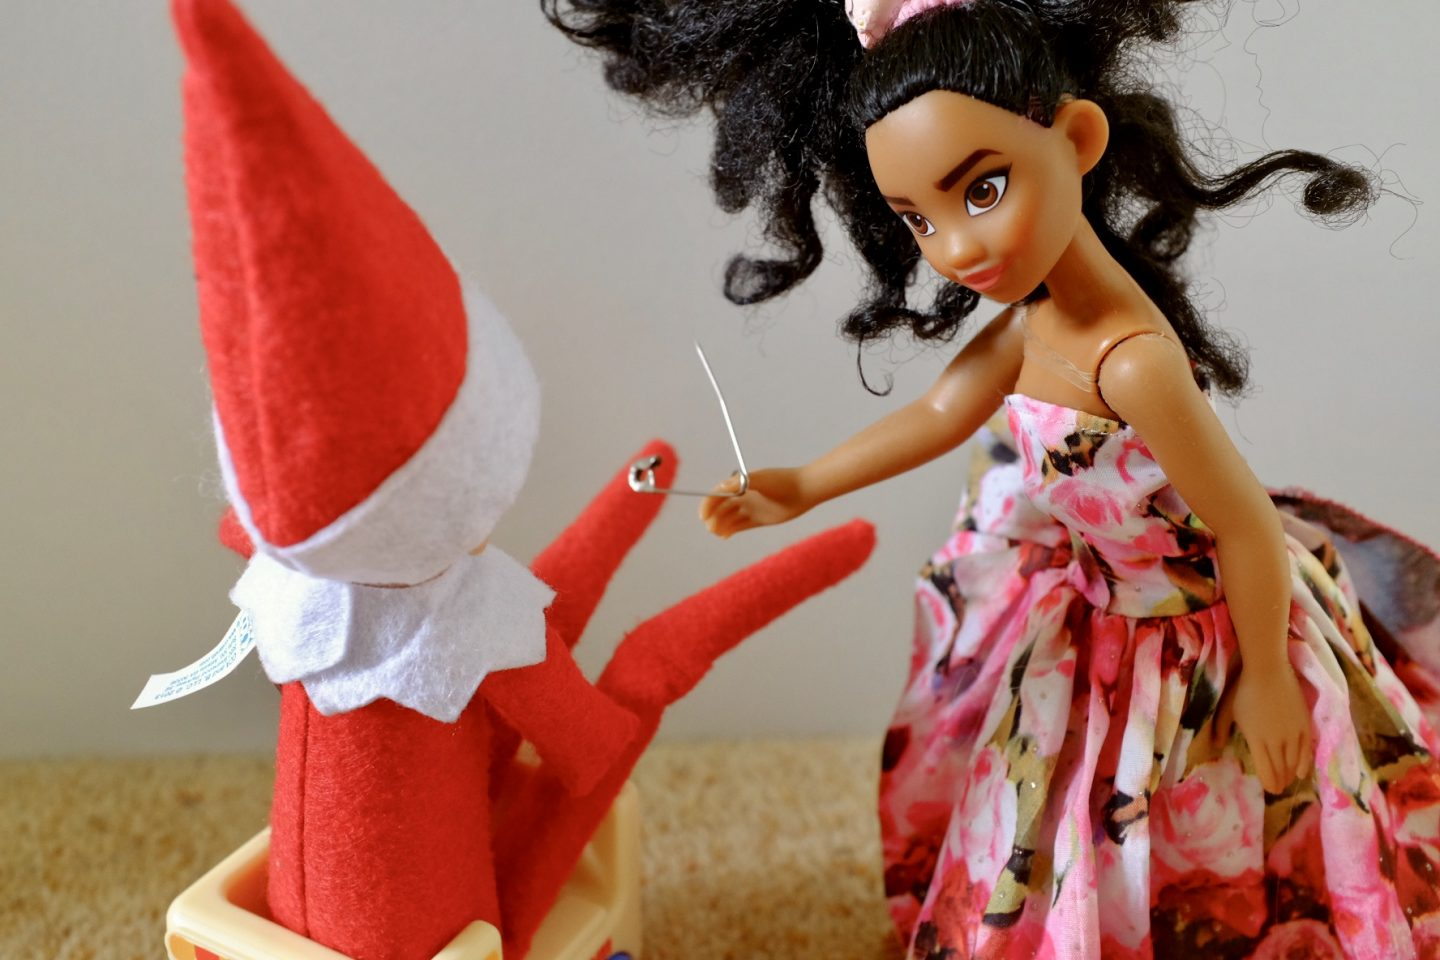 elf gets an extreme piercing by Moana doll - naughty elf ideas